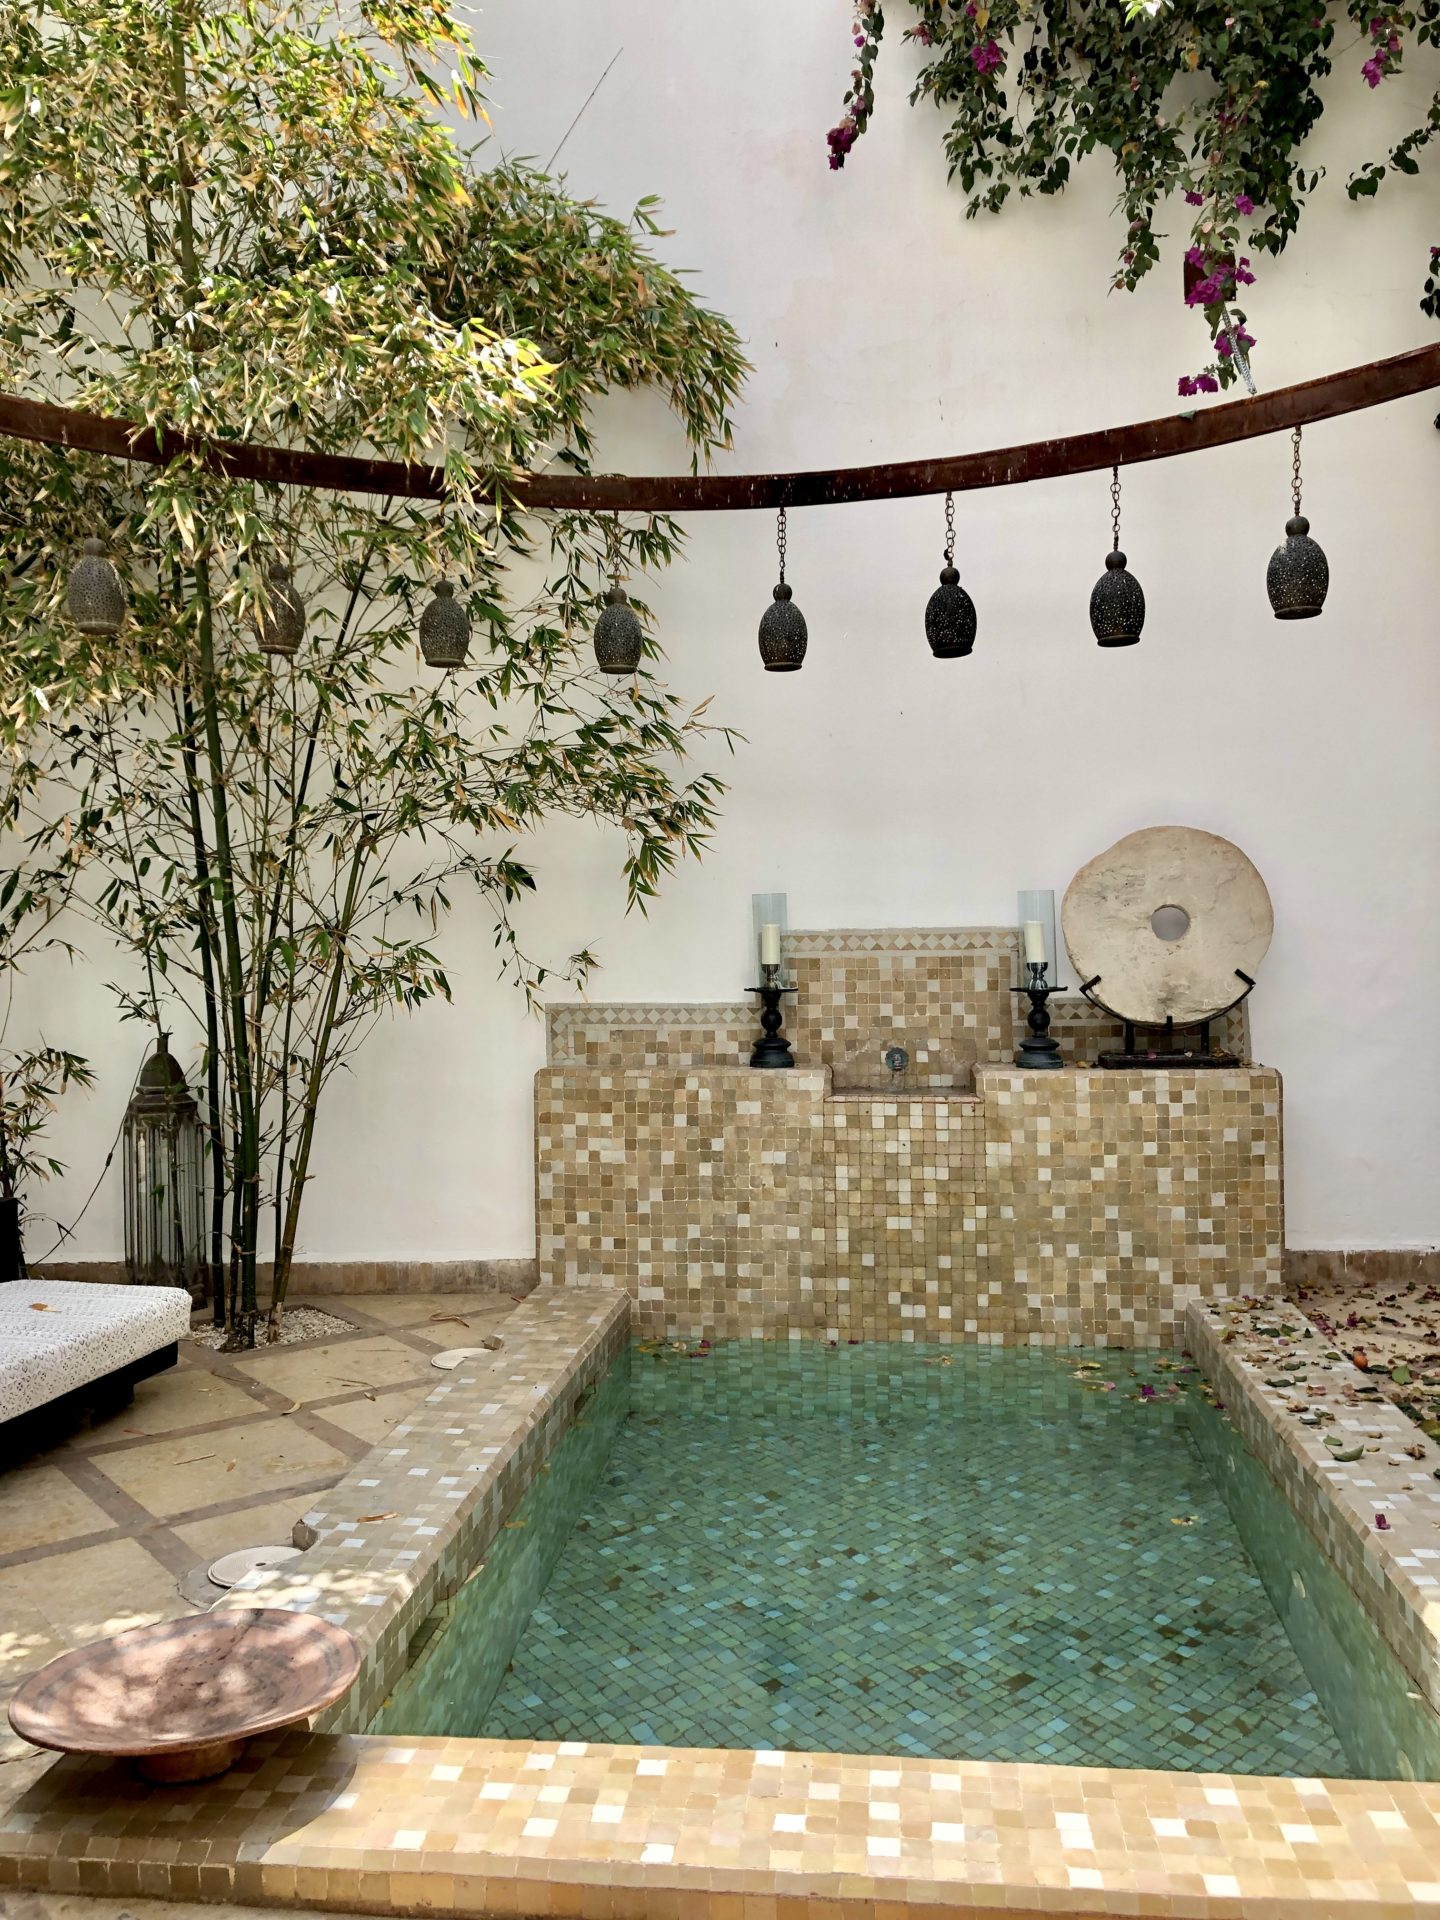 The beautiful and serene pool and courtyard set up at Riad Dyor